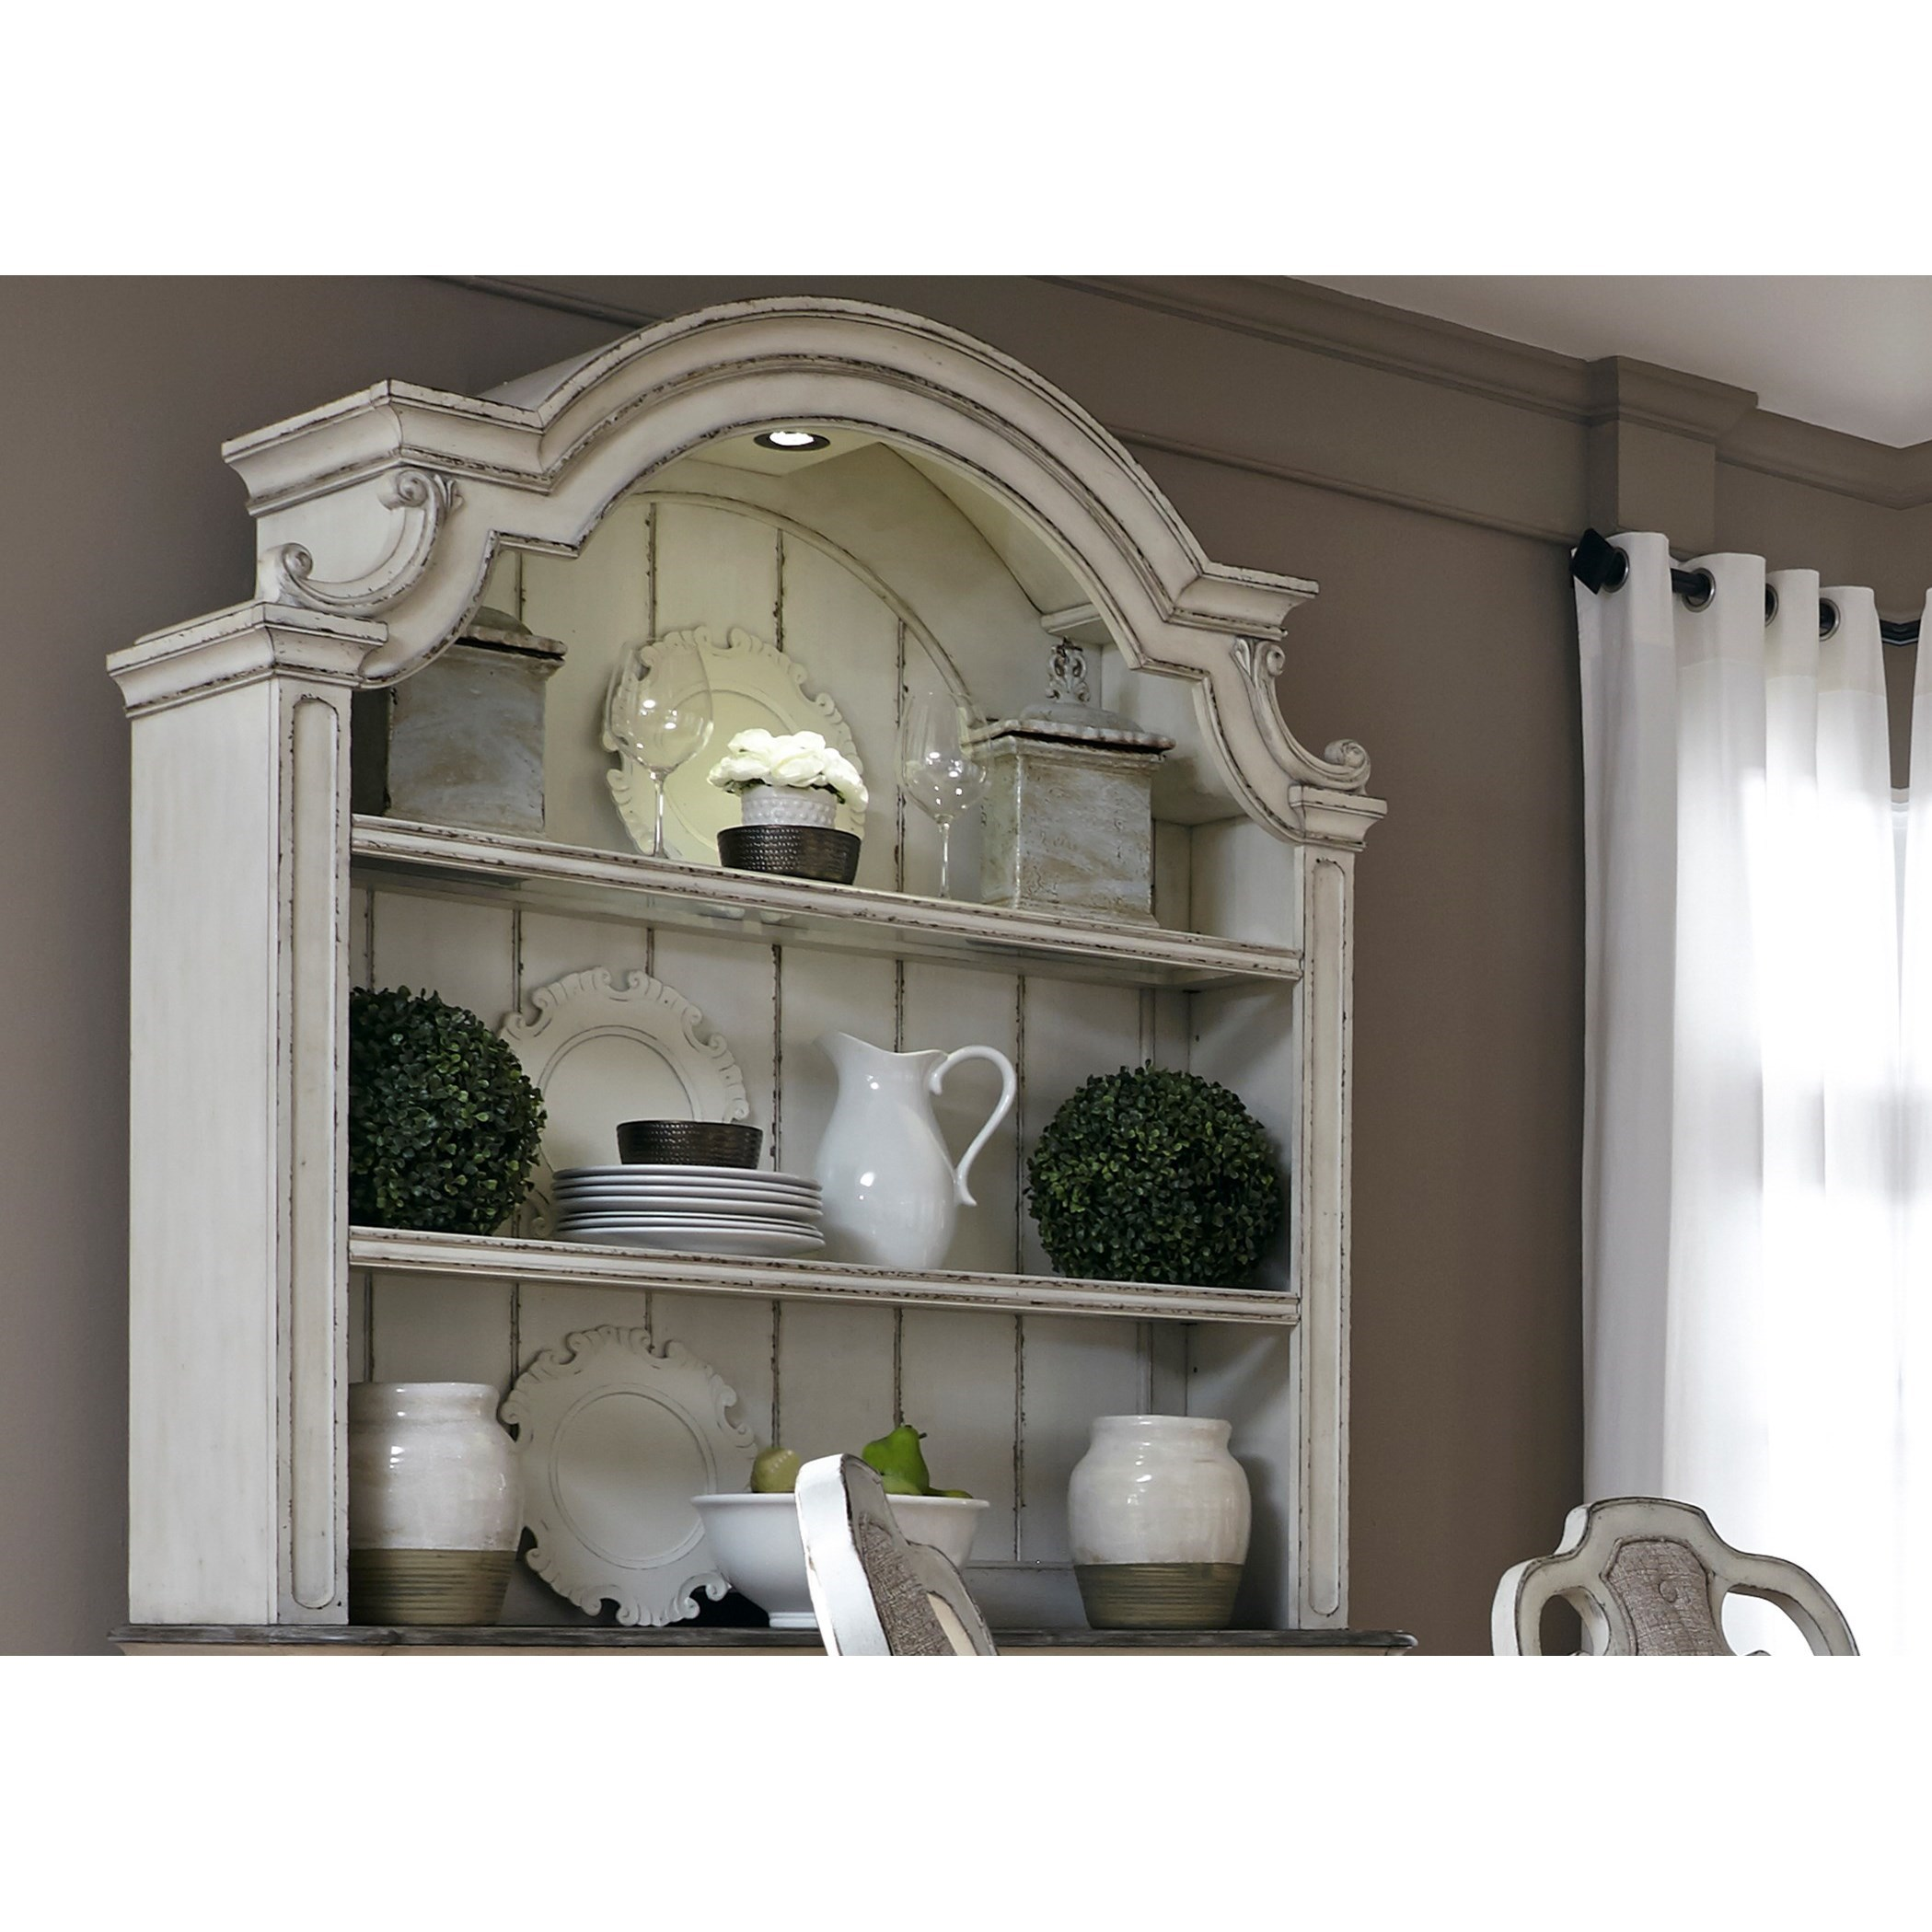 2 Shelf Hutch with Touch Lighting